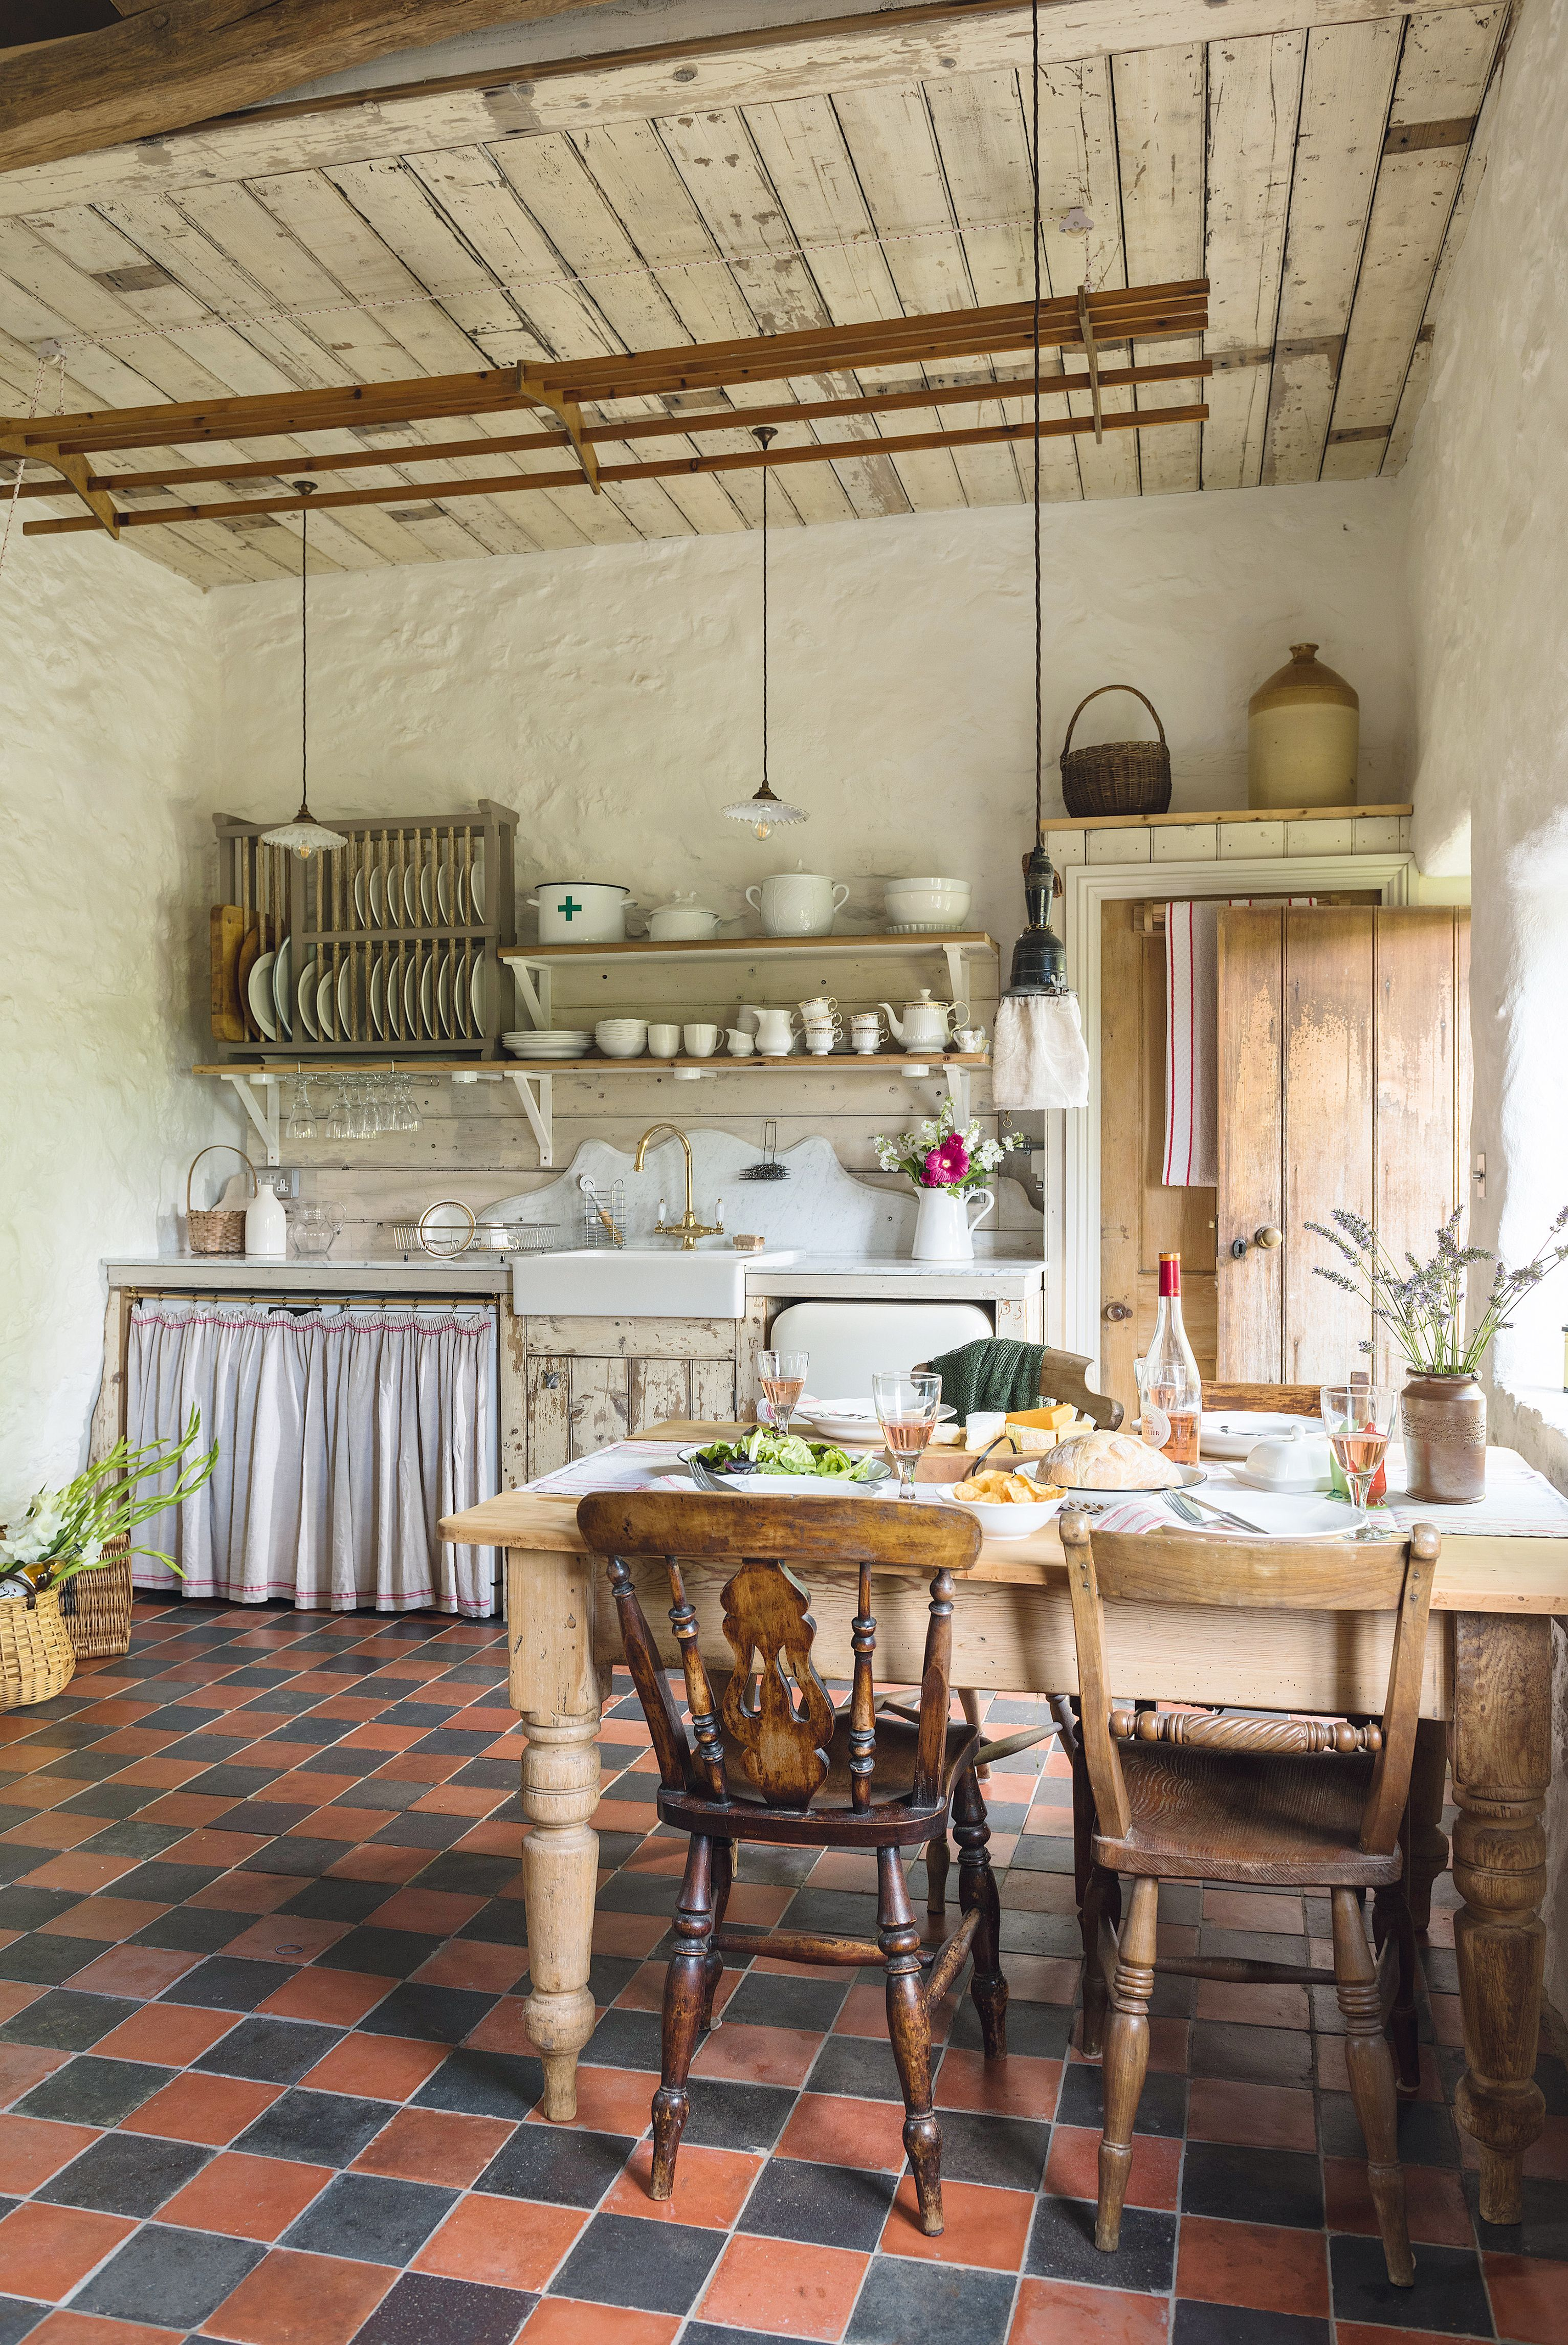 Take a tour around this pretty rustic cottage